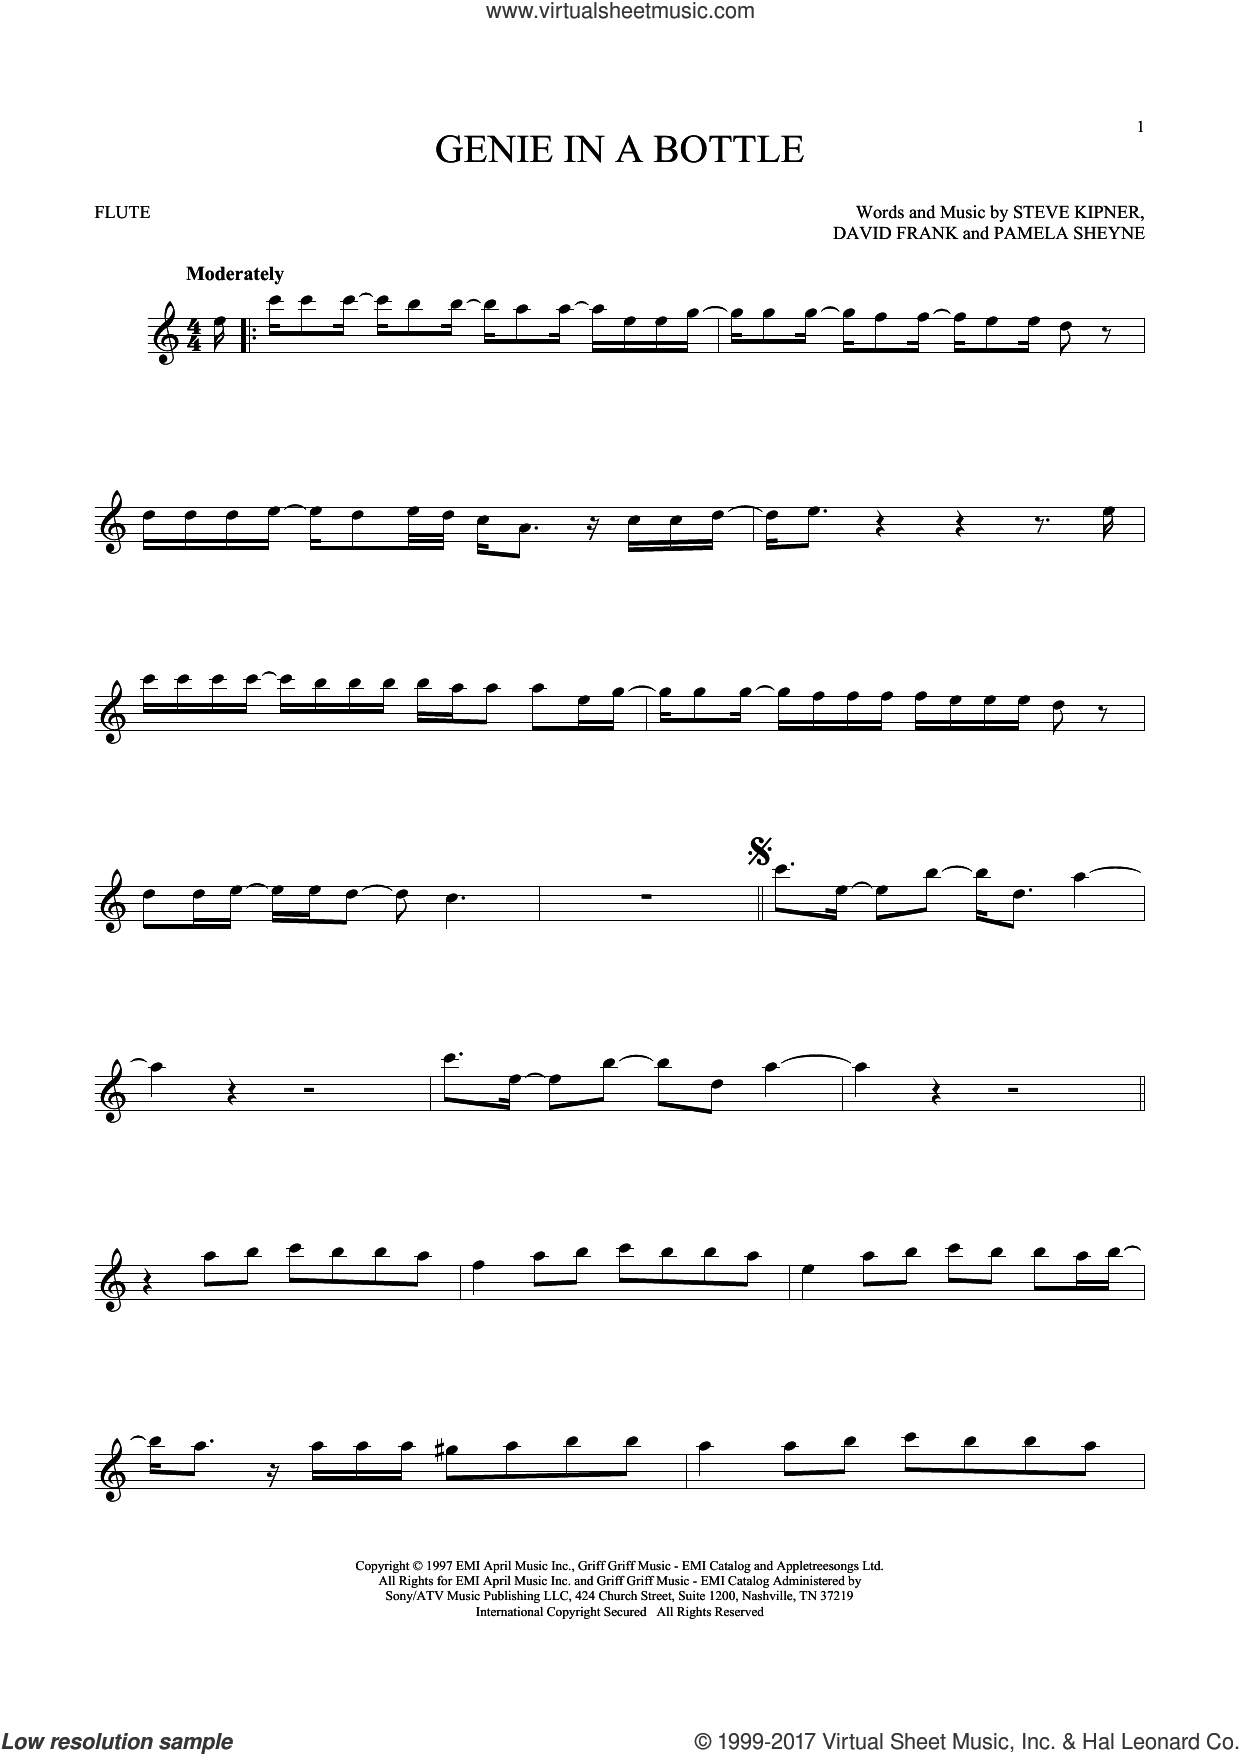 Genie In A Bottle sheet music for flute solo by Christina Aguilera, David Frank, Pam Sheyne and Steve Kipner, intermediate skill level